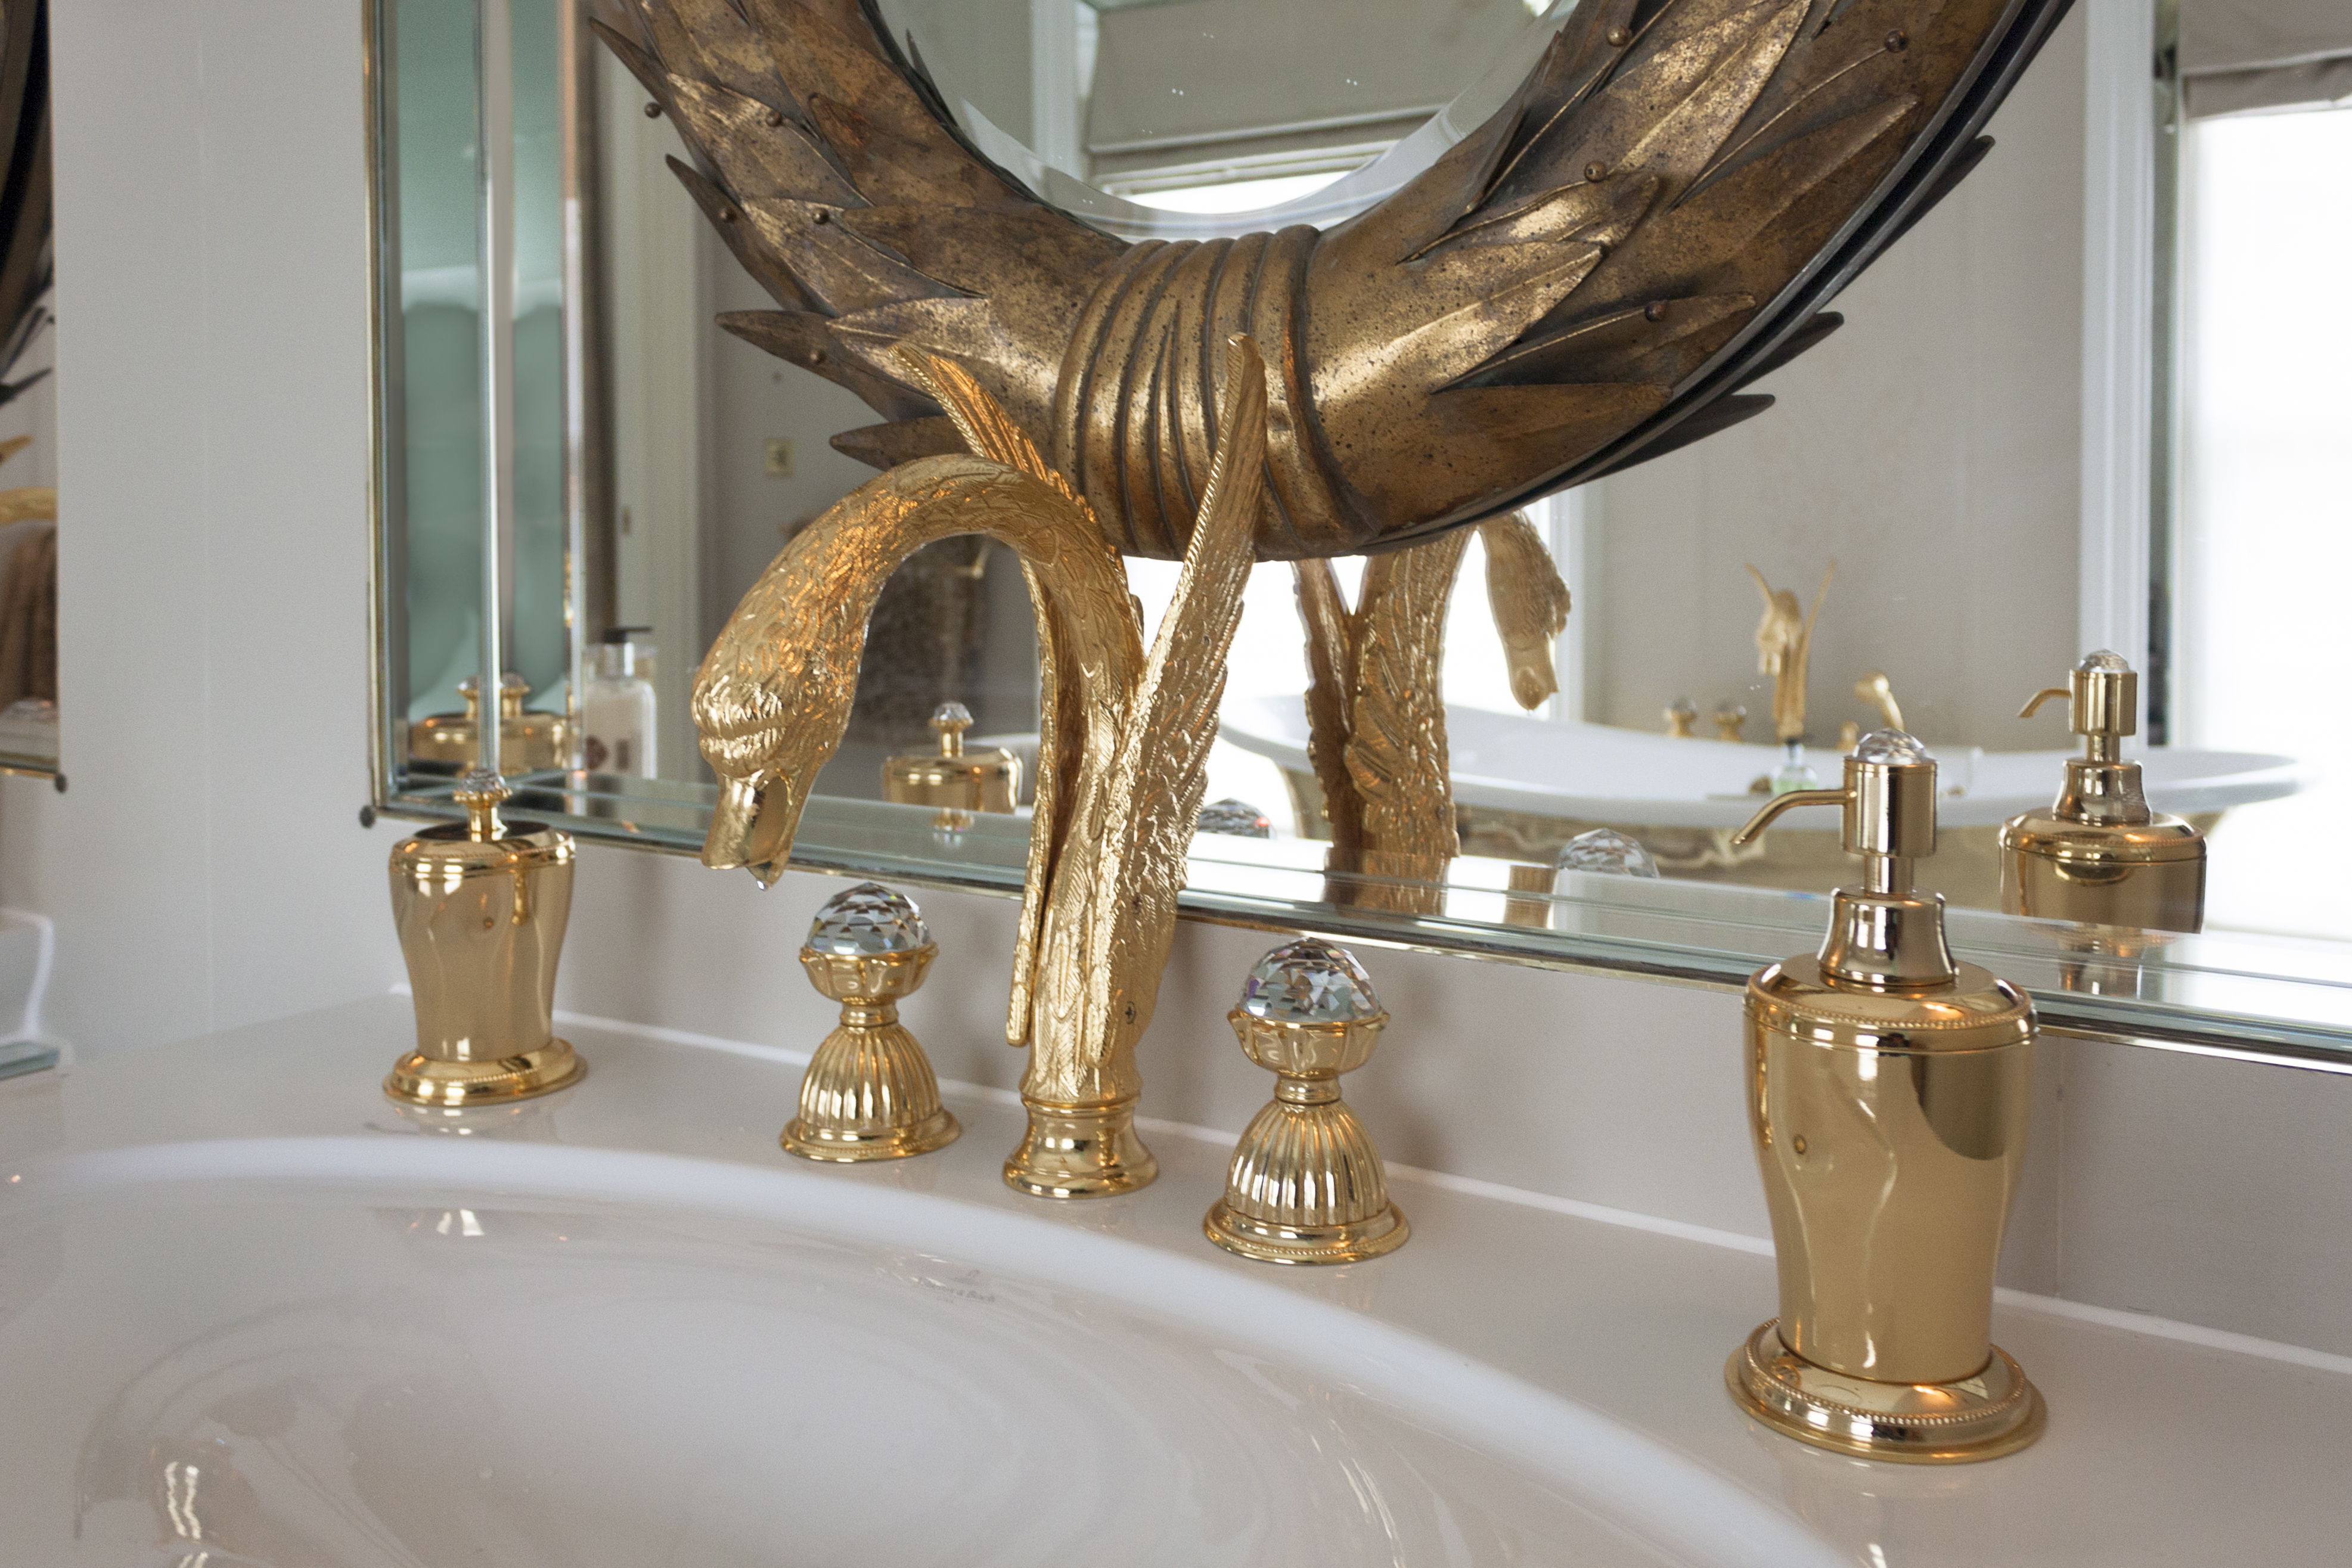 design-oriented bathroom fittings bronces mestre faucets swan